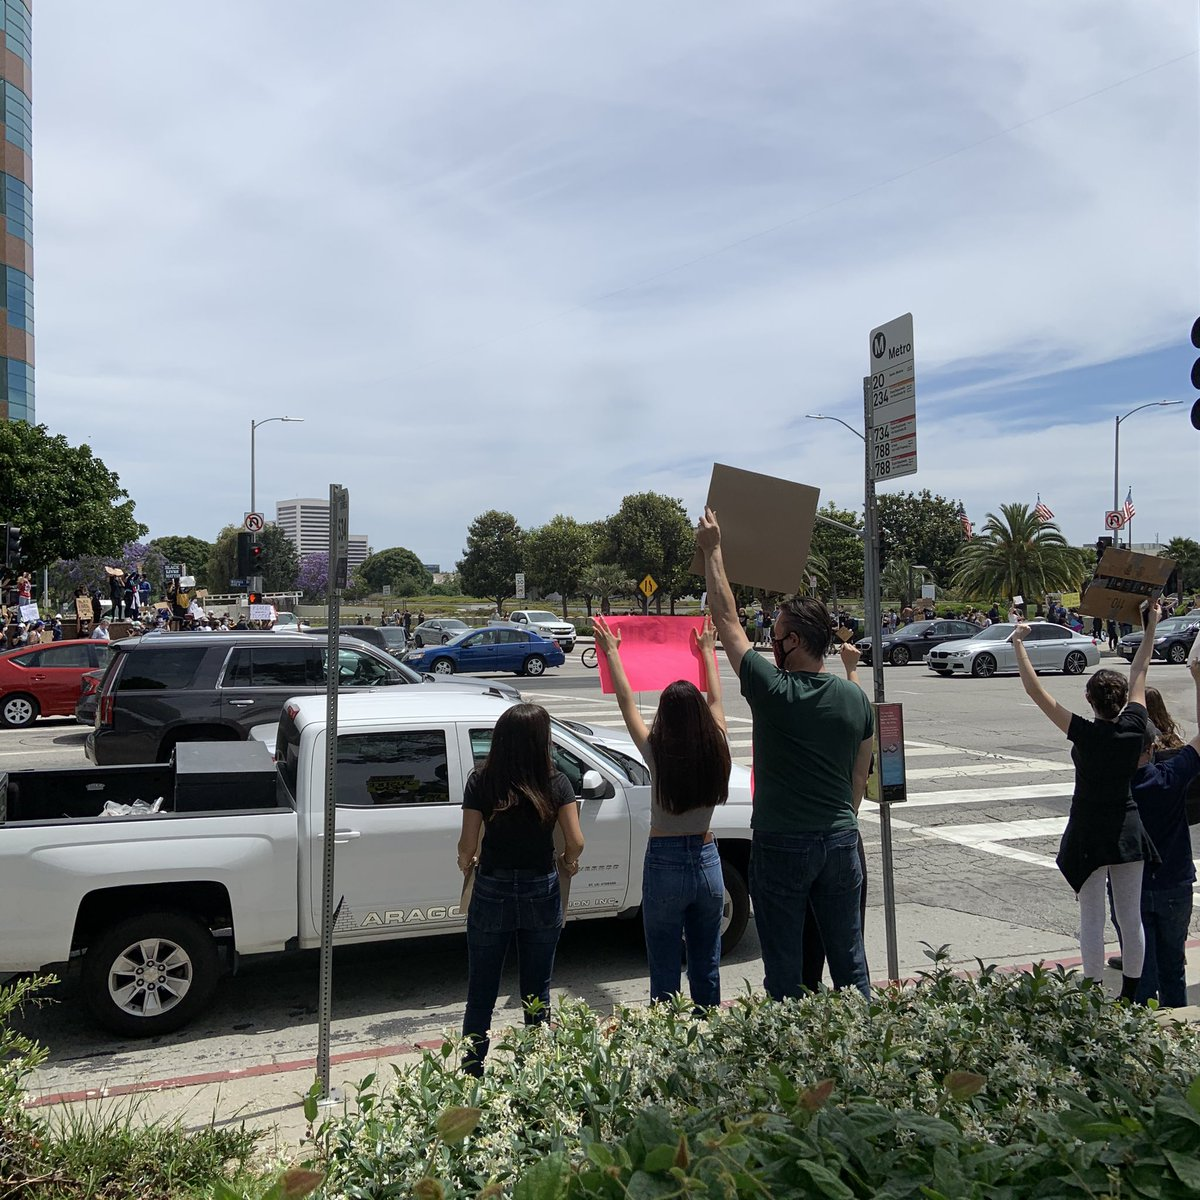 As peaceful protest has begun at the corner of Wilshire and Veteran in #LA the National Guard just rolled in.